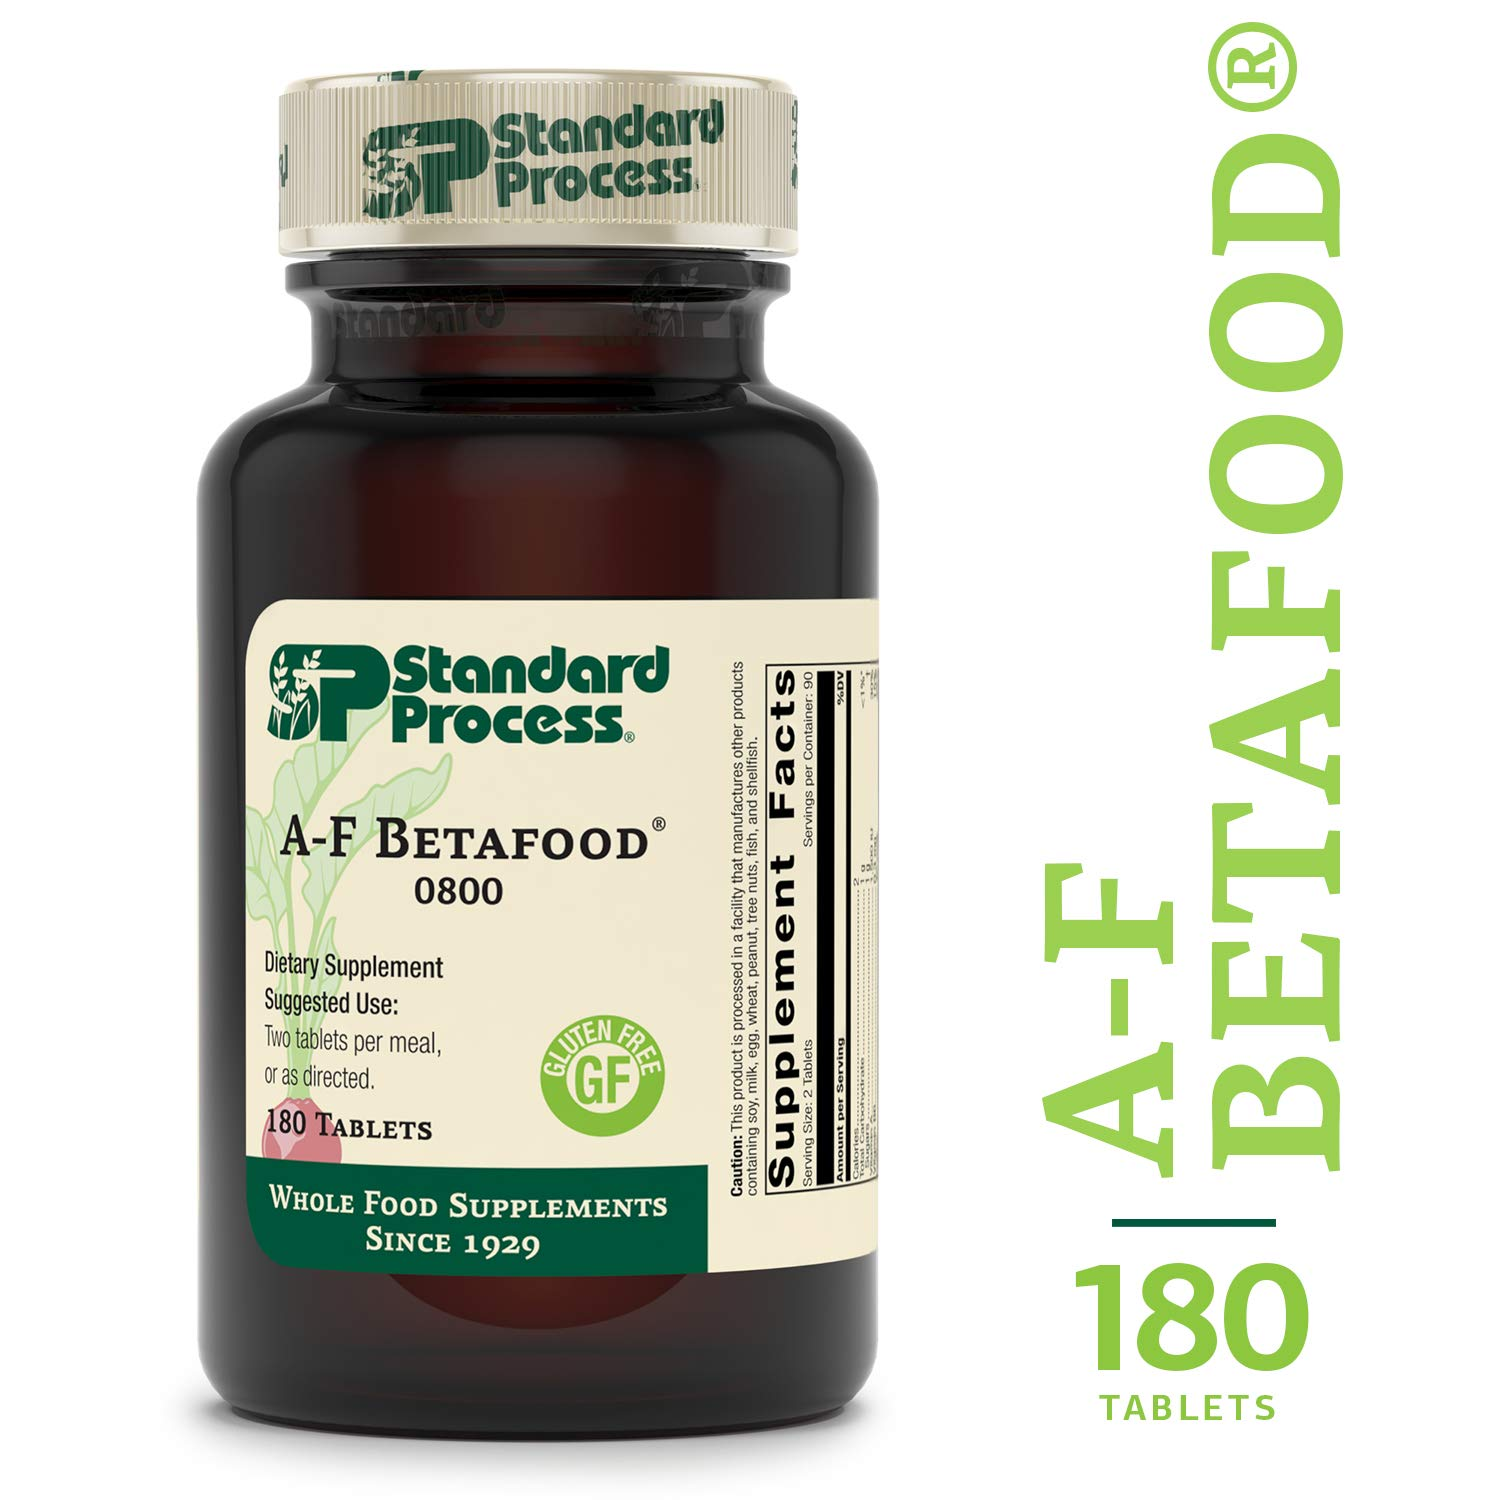 Standard Process - A-F Betafood - Whole Food Gluten Free Digestive Supplement, 1500 IU Vitamin A, Supports Healthy Fat Digestion, Cholesterol Metabolism, and Healthy Bowel Function - 180 Tablets